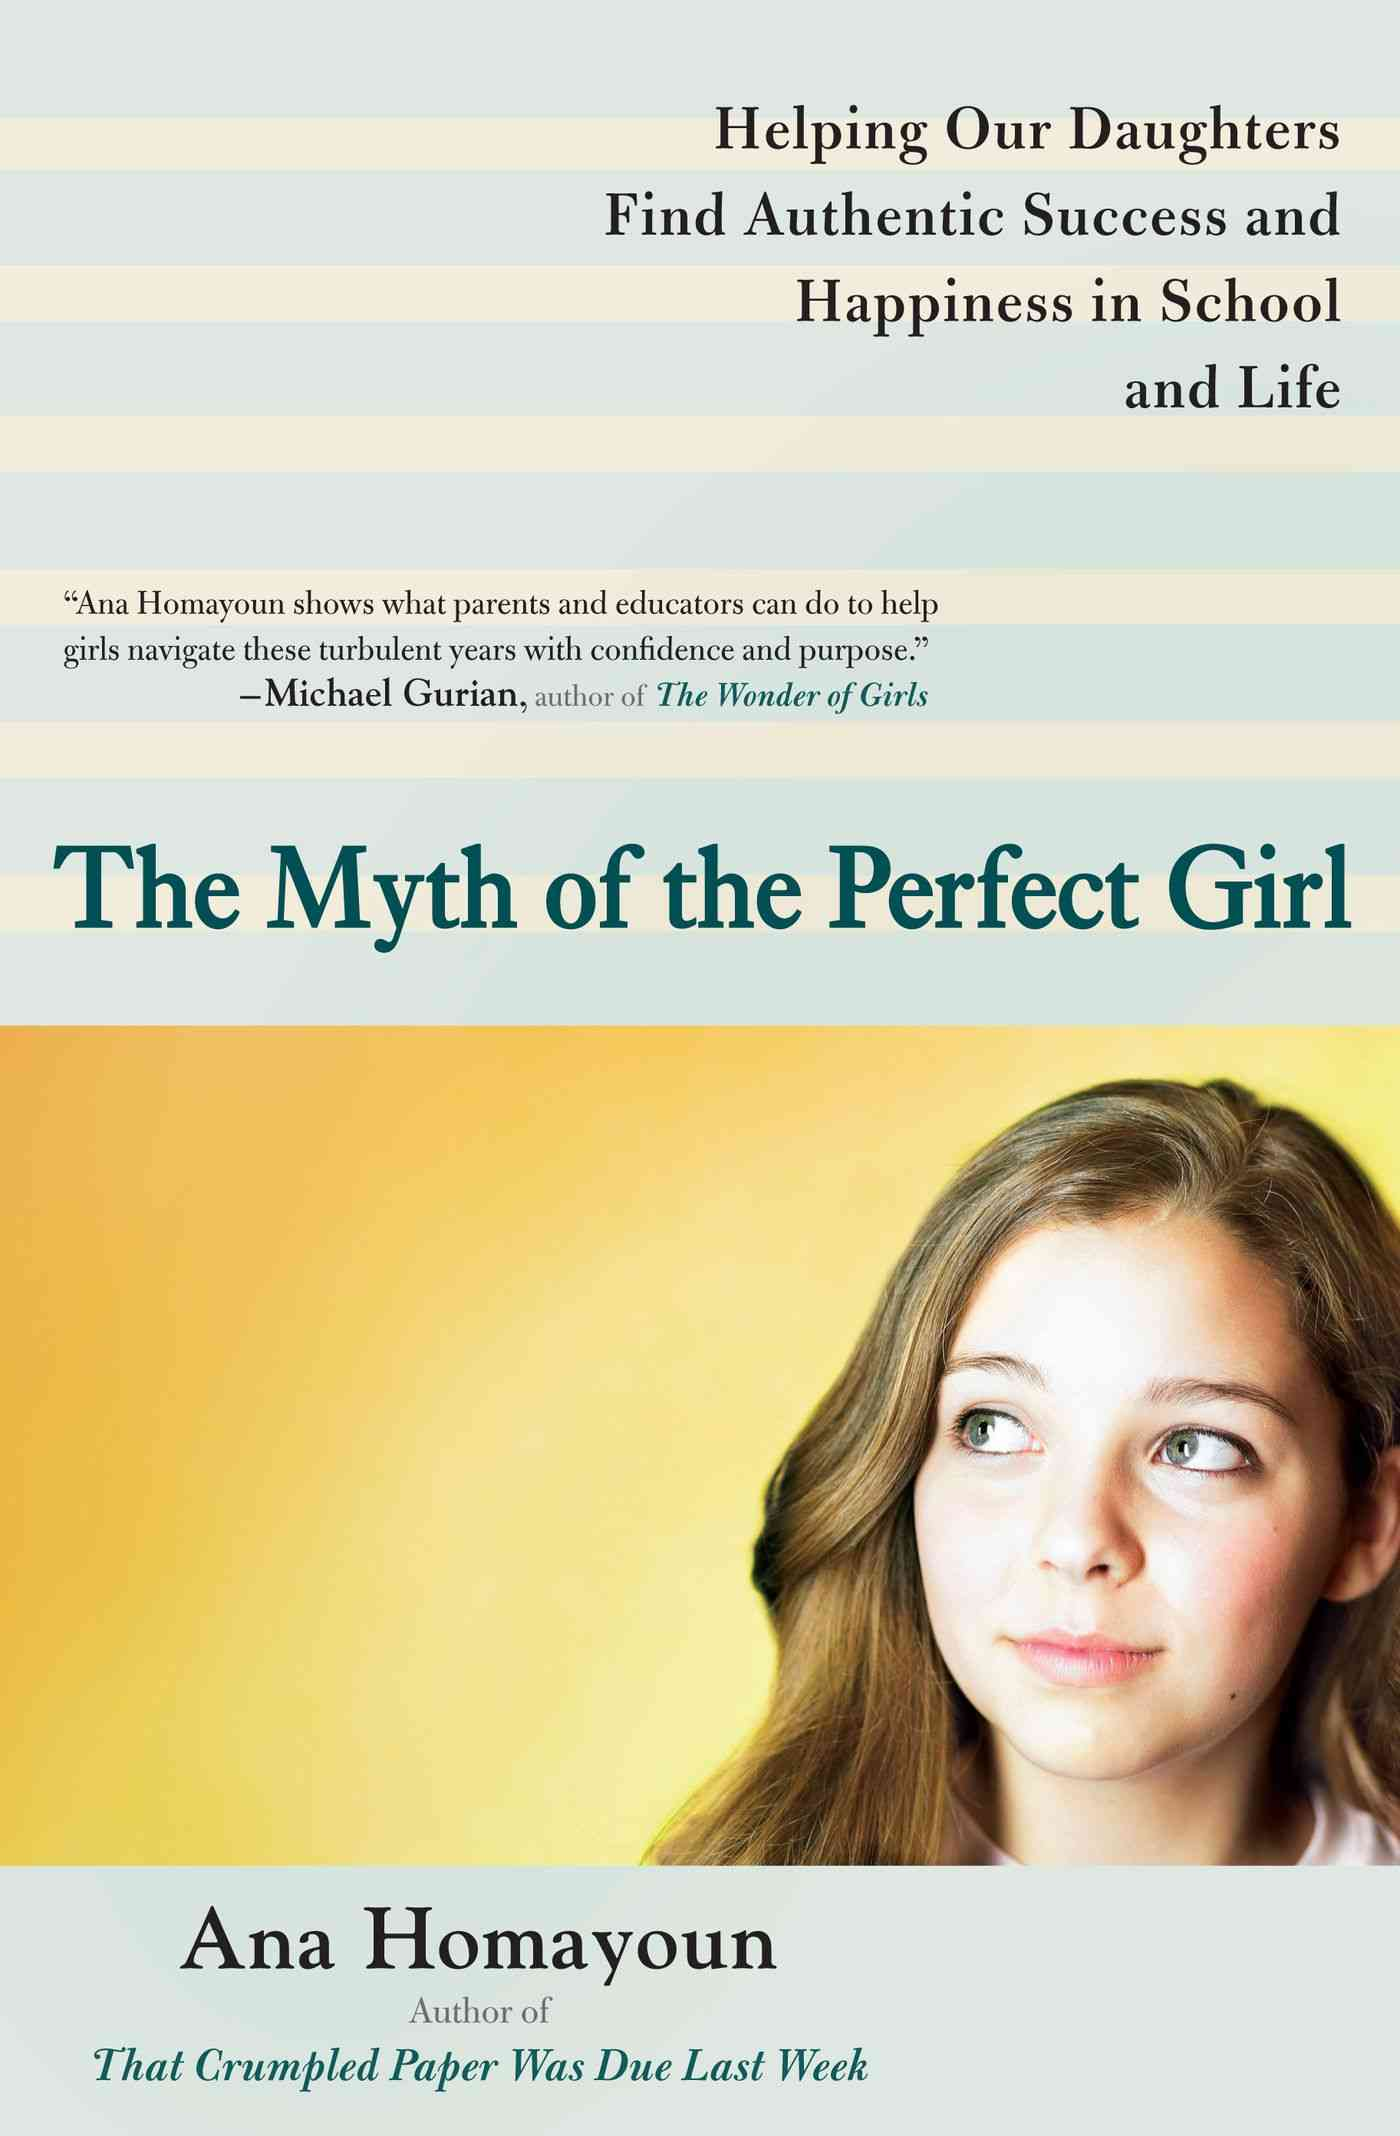 The Myth of the Perfect Girl: Helping Our Daughters Find Authentic Success and Happiness in School and Life (Paperback)